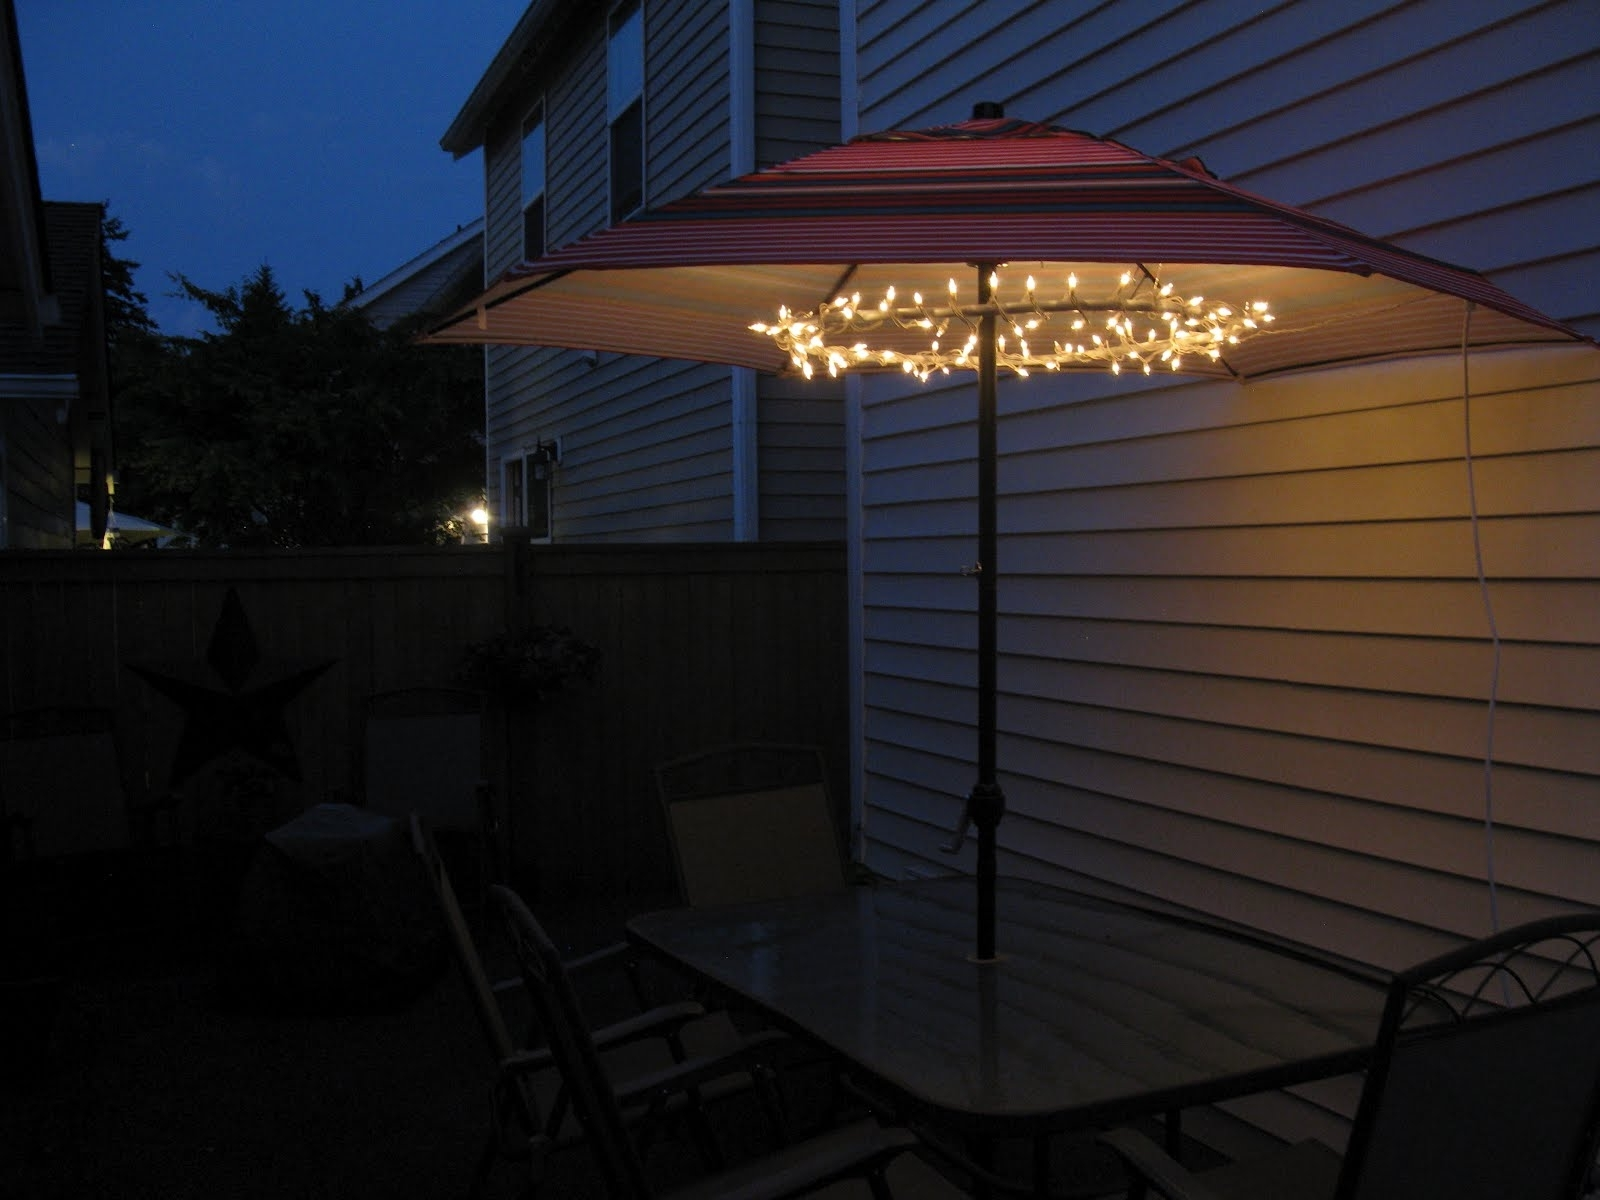 Amazing Patio Umbrella Lights — Wilson Home Ideas : Beautiful Patio Pertaining To Preferred Outdoor Battery Lanterns For Patio (View 2 of 20)